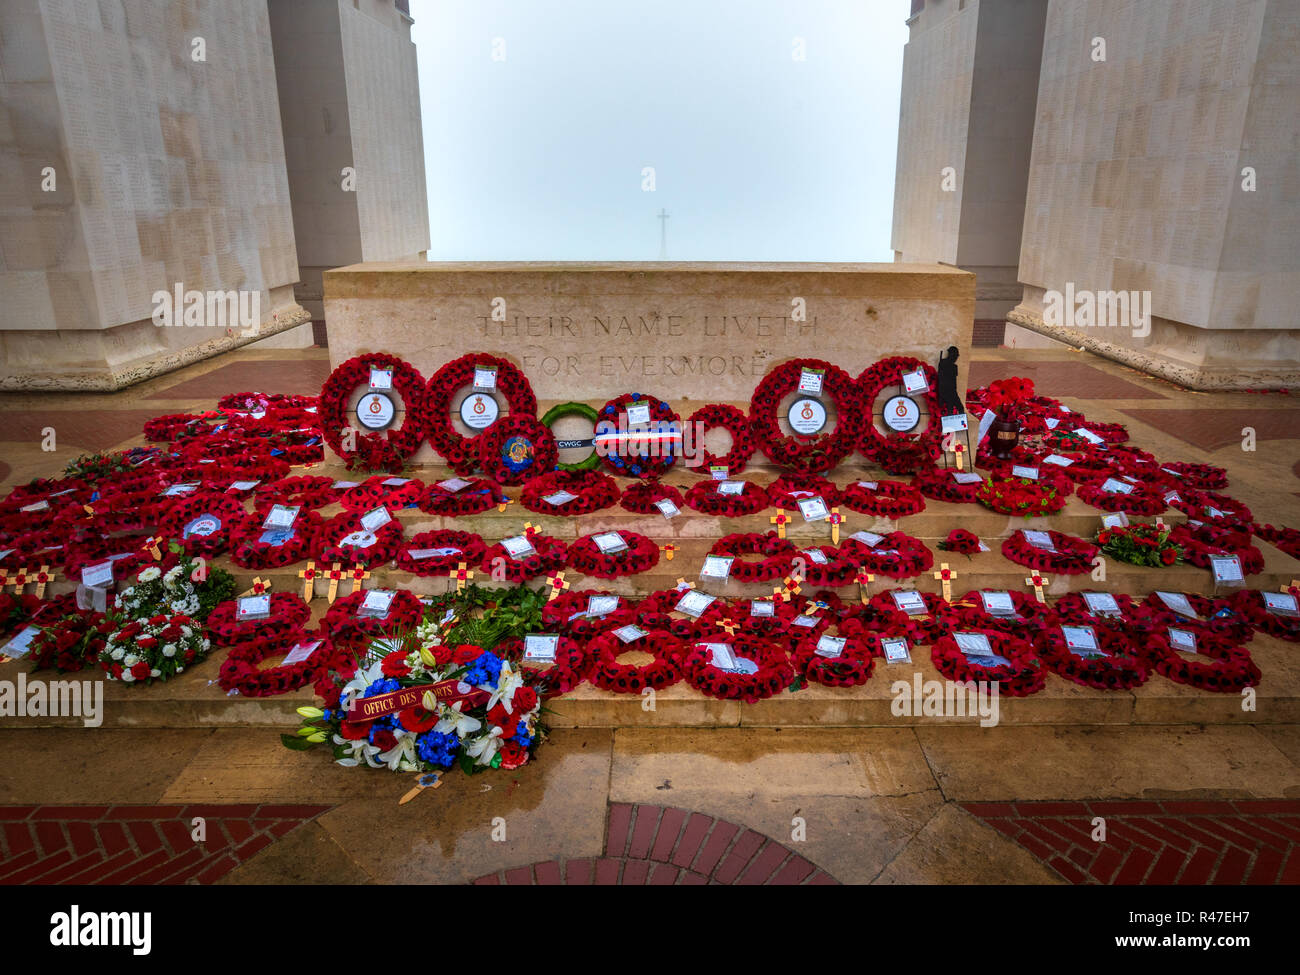 Poppy wreaths laid at stone of remembrance at Thiepval Memorial to the Missing to mark centenary of Armistice - Stock Image